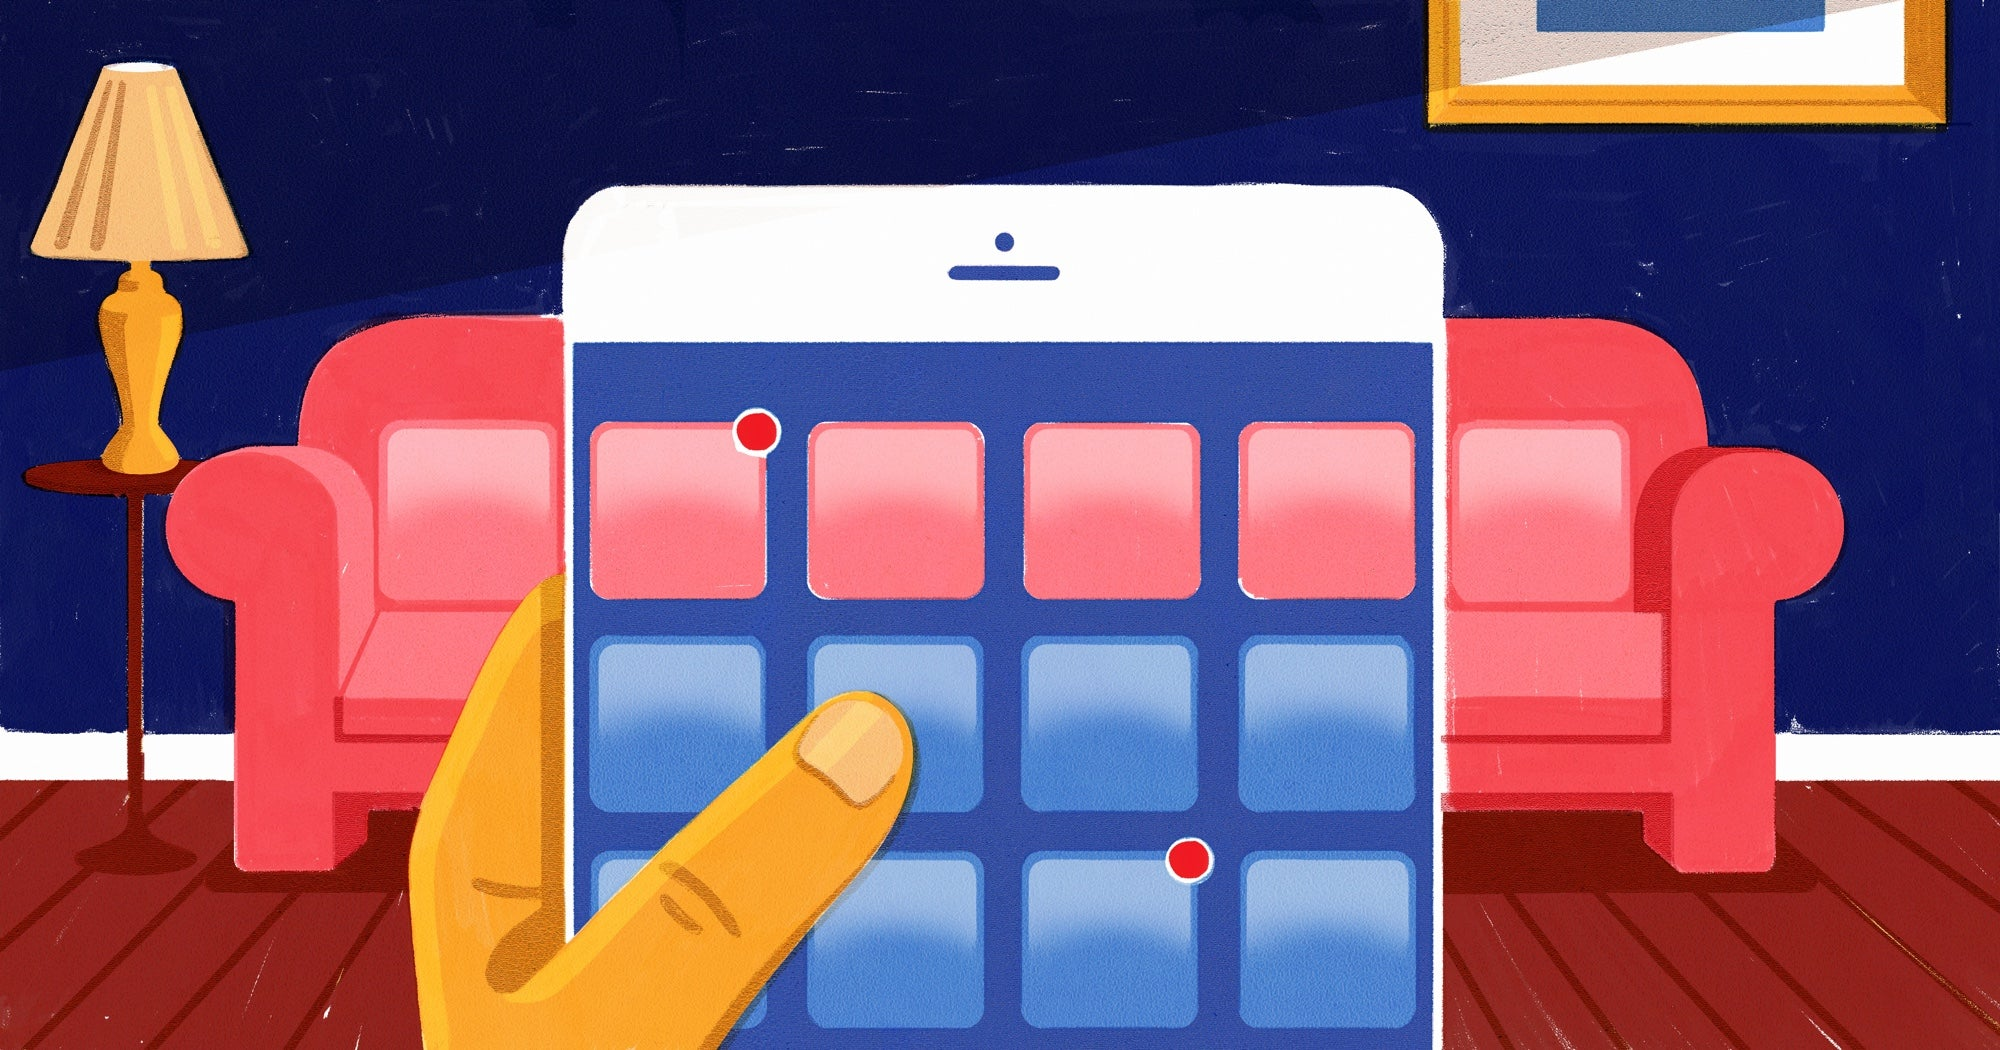 Illustration of a person shopping for furniture online: close up of hand holding a phone. App icons mimic the appearance of pillows on a couch in the background